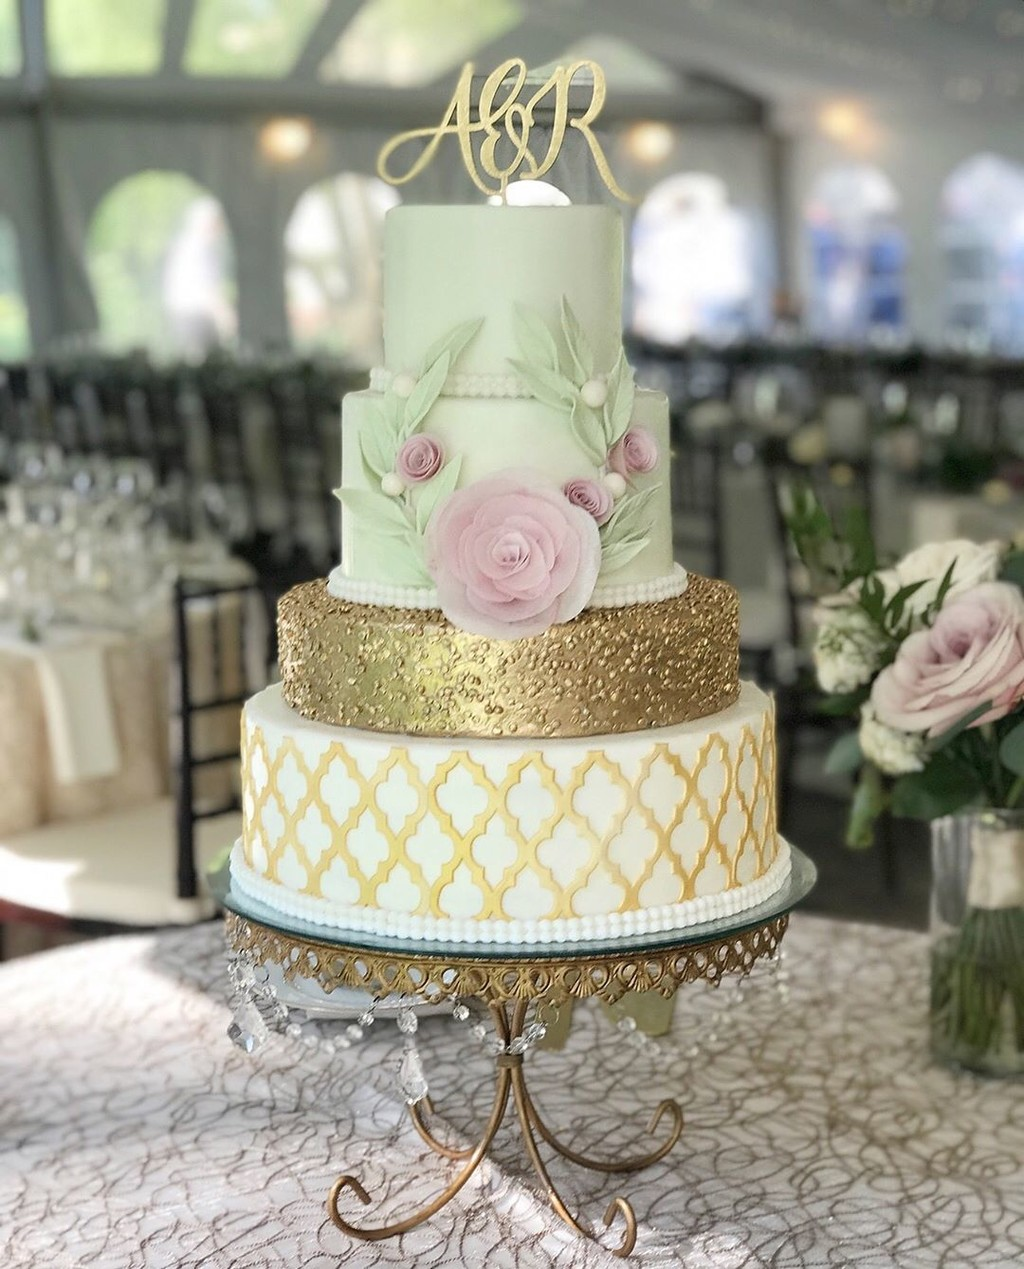 Wedding cake by @couturecakery inspired by the beautiful work